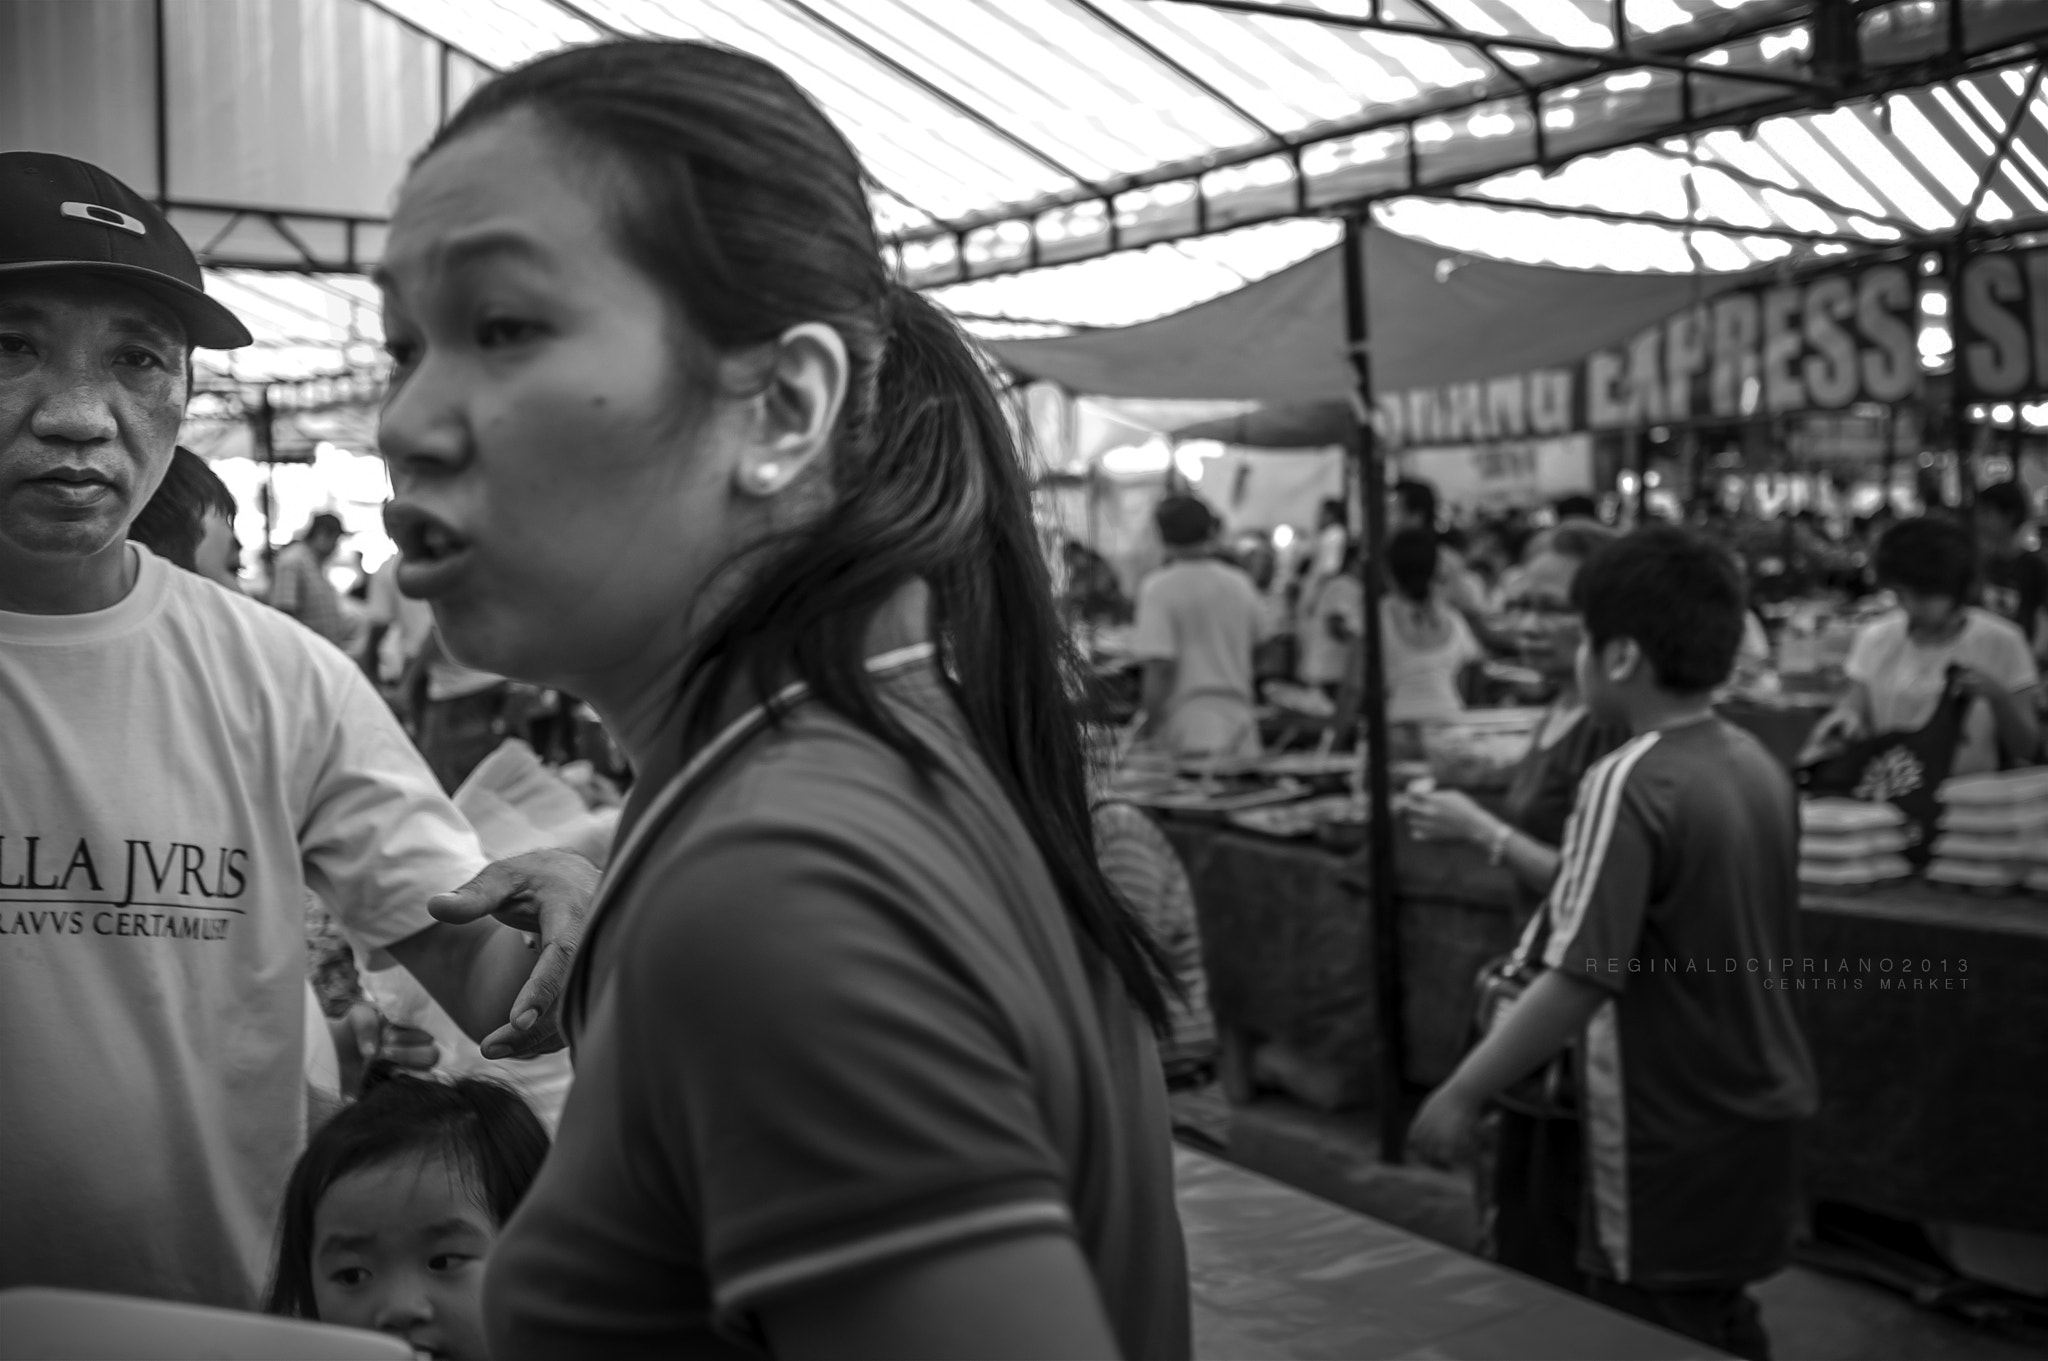 Photograph X100 Street: Centris Market by RC Cipriano on 500px